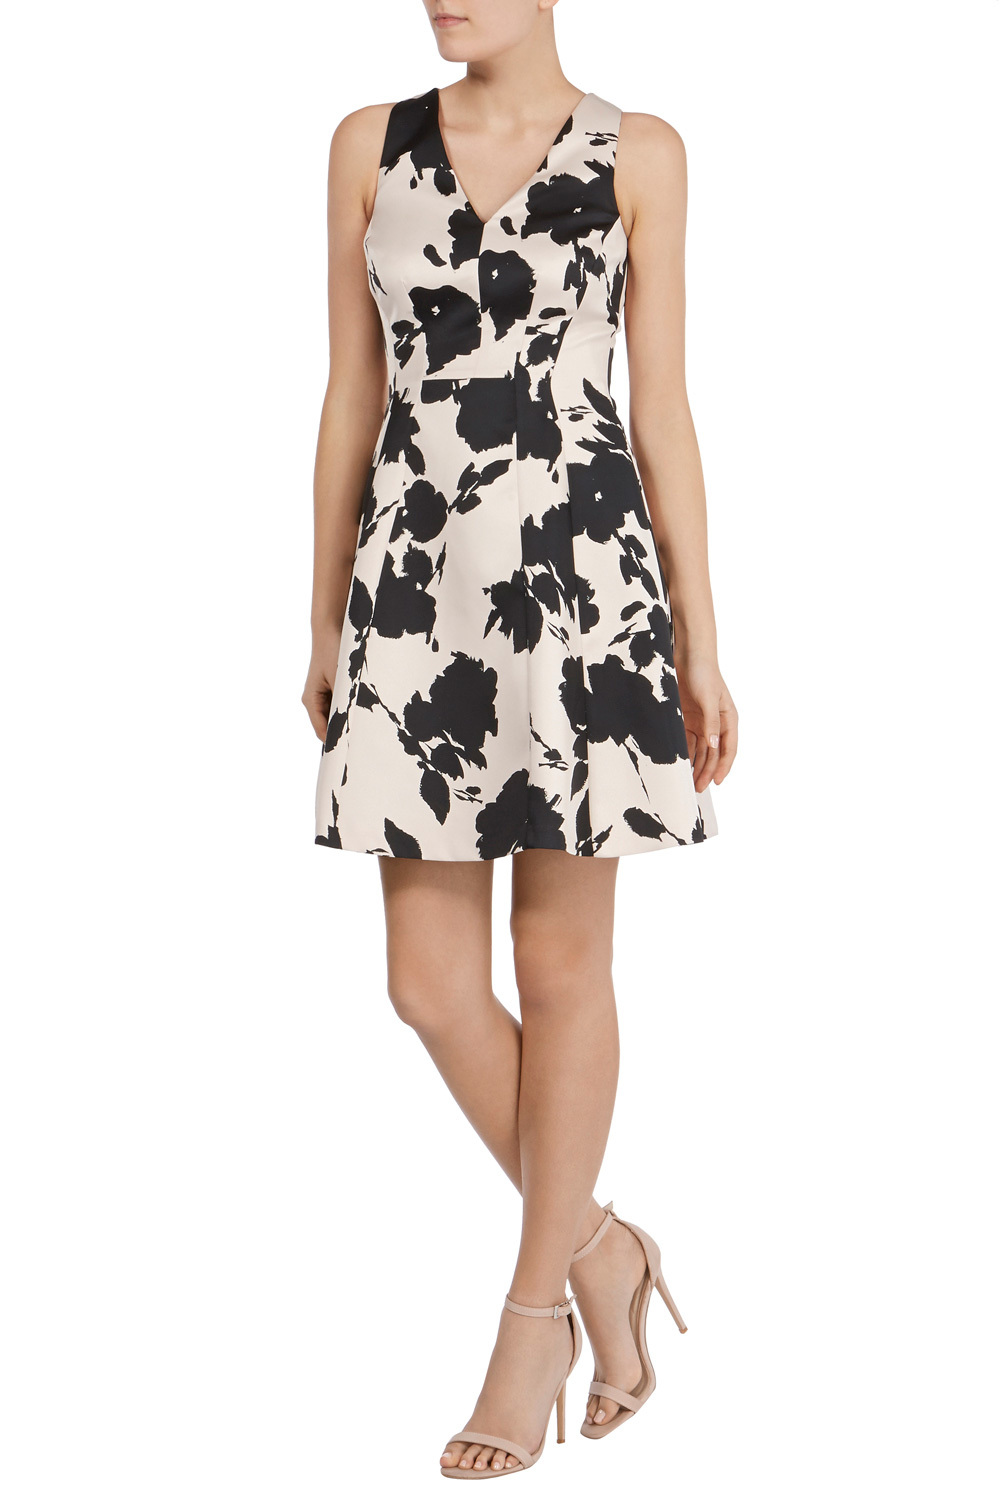 Belise Print Kristen Dress - neckline: v-neck; sleeve style: sleeveless; predominant colour: white; secondary colour: black; occasions: evening; length: just above the knee; fit: fitted at waist & bust; style: fit & flare; fibres: polyester/polyamide - 100%; sleeve length: sleeveless; pattern type: fabric; pattern size: big & busy; pattern: florals; texture group: other - light to midweight; multicoloured: multicoloured; season: s/s 2016; wardrobe: event